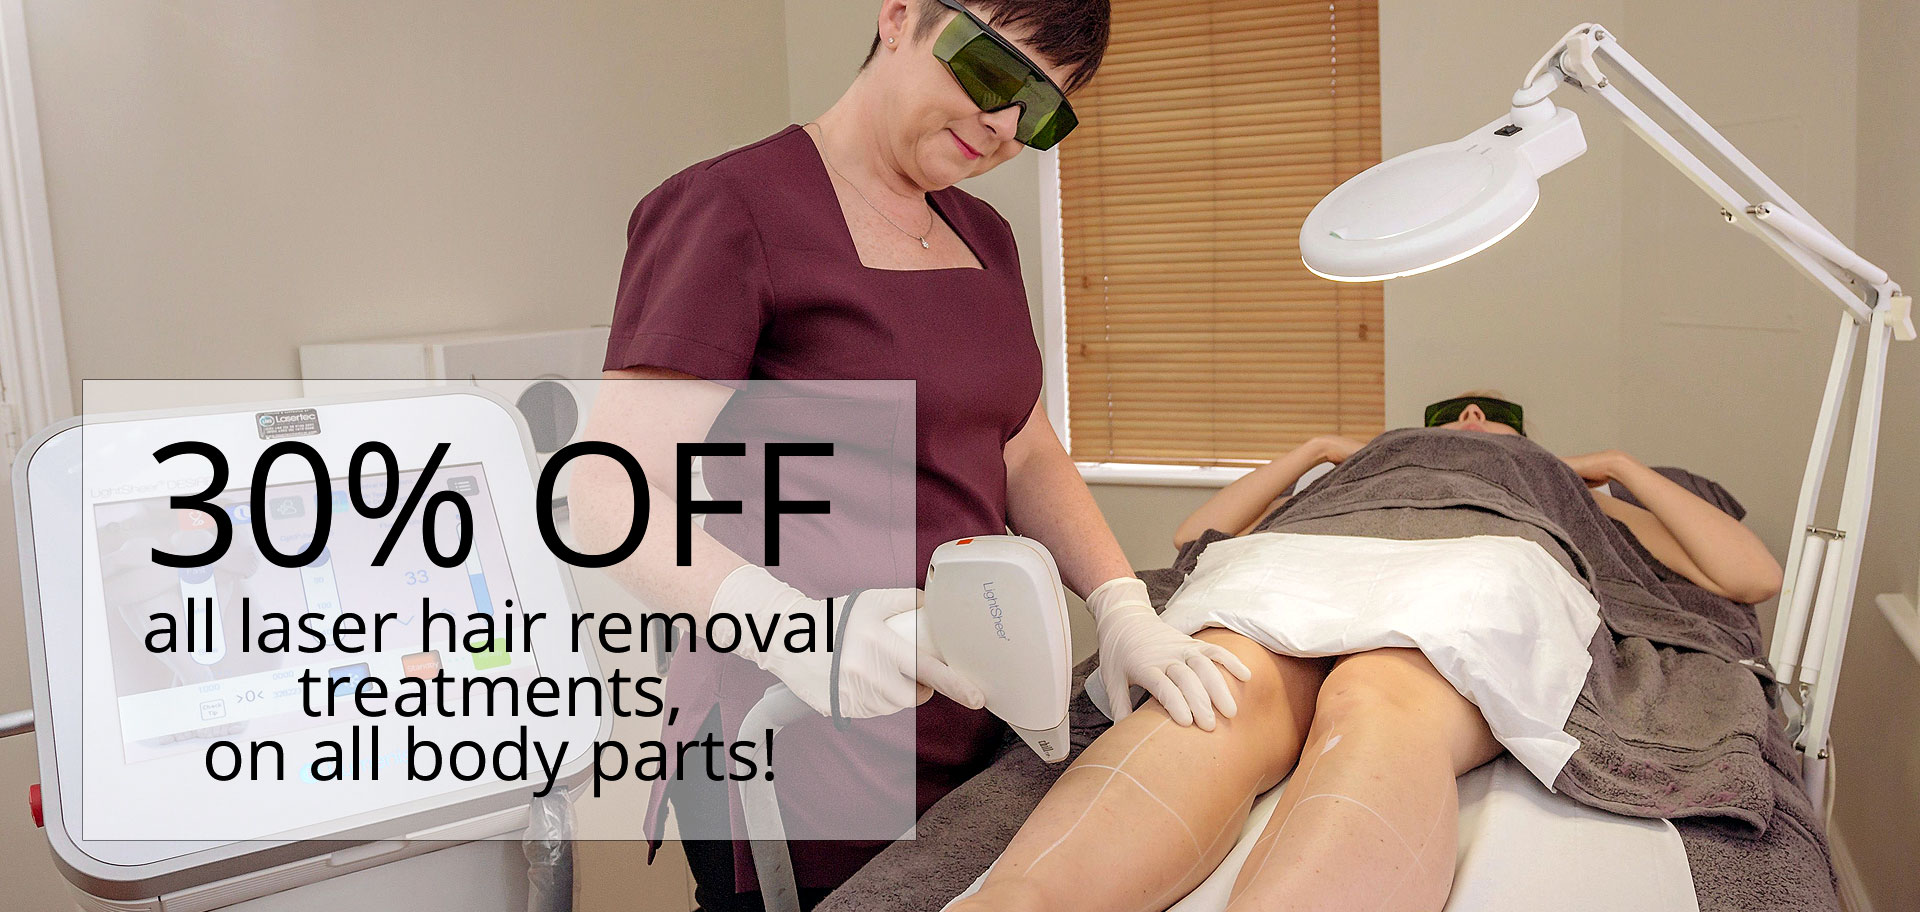 30% off all laser hair removal treatments on all body parts